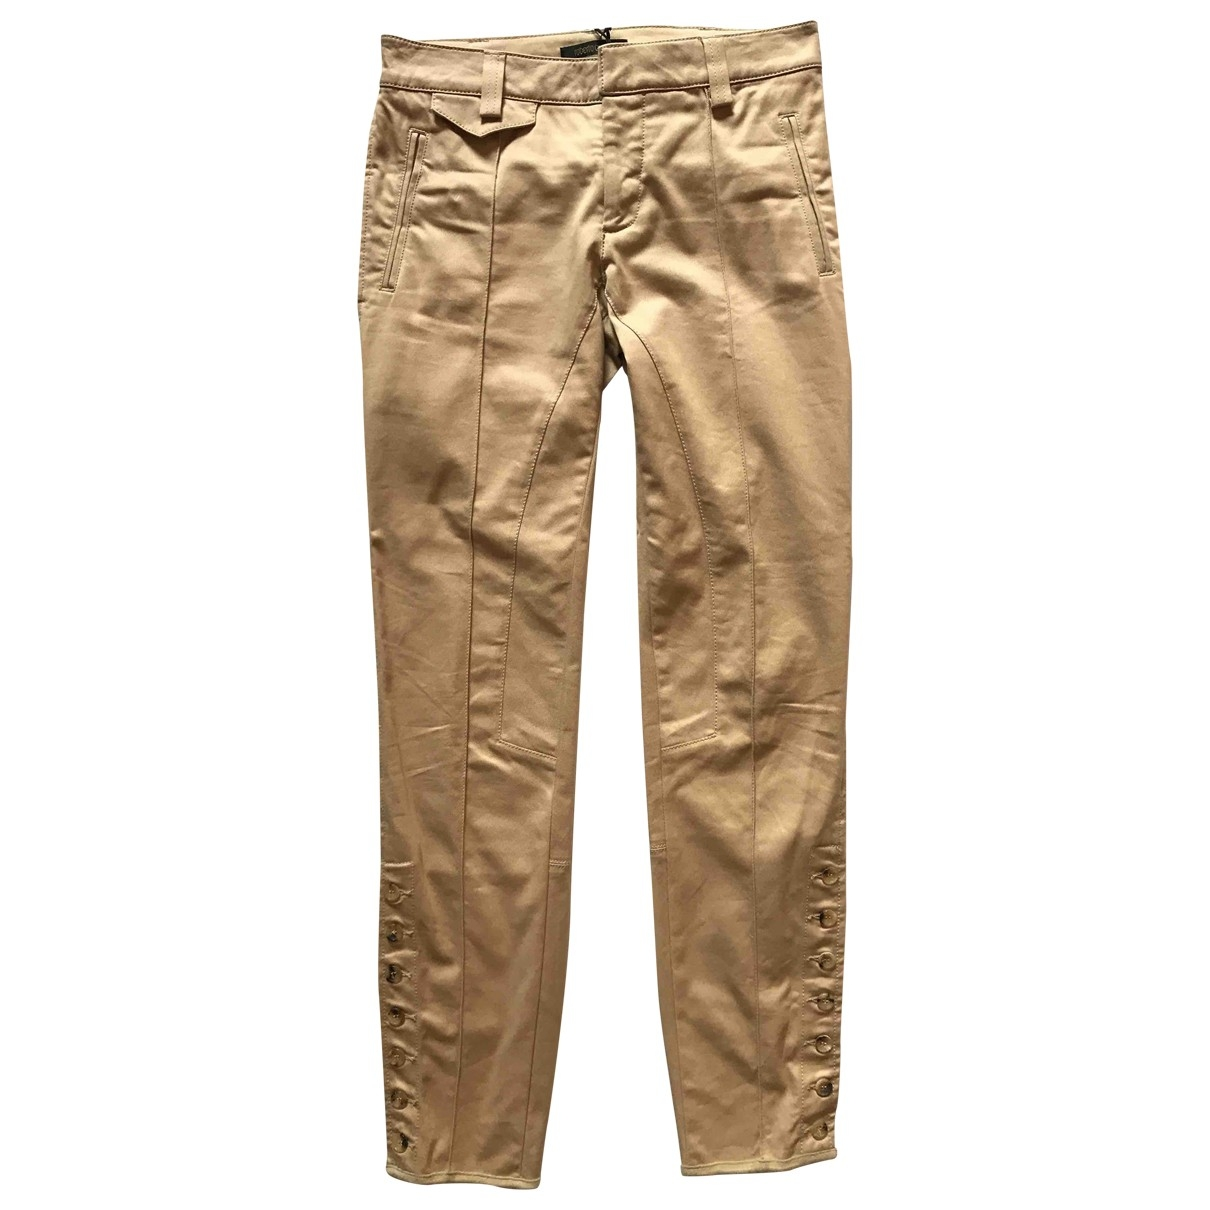 Roberto Cavalli \N Camel Cotton Trousers for Women 36 IT